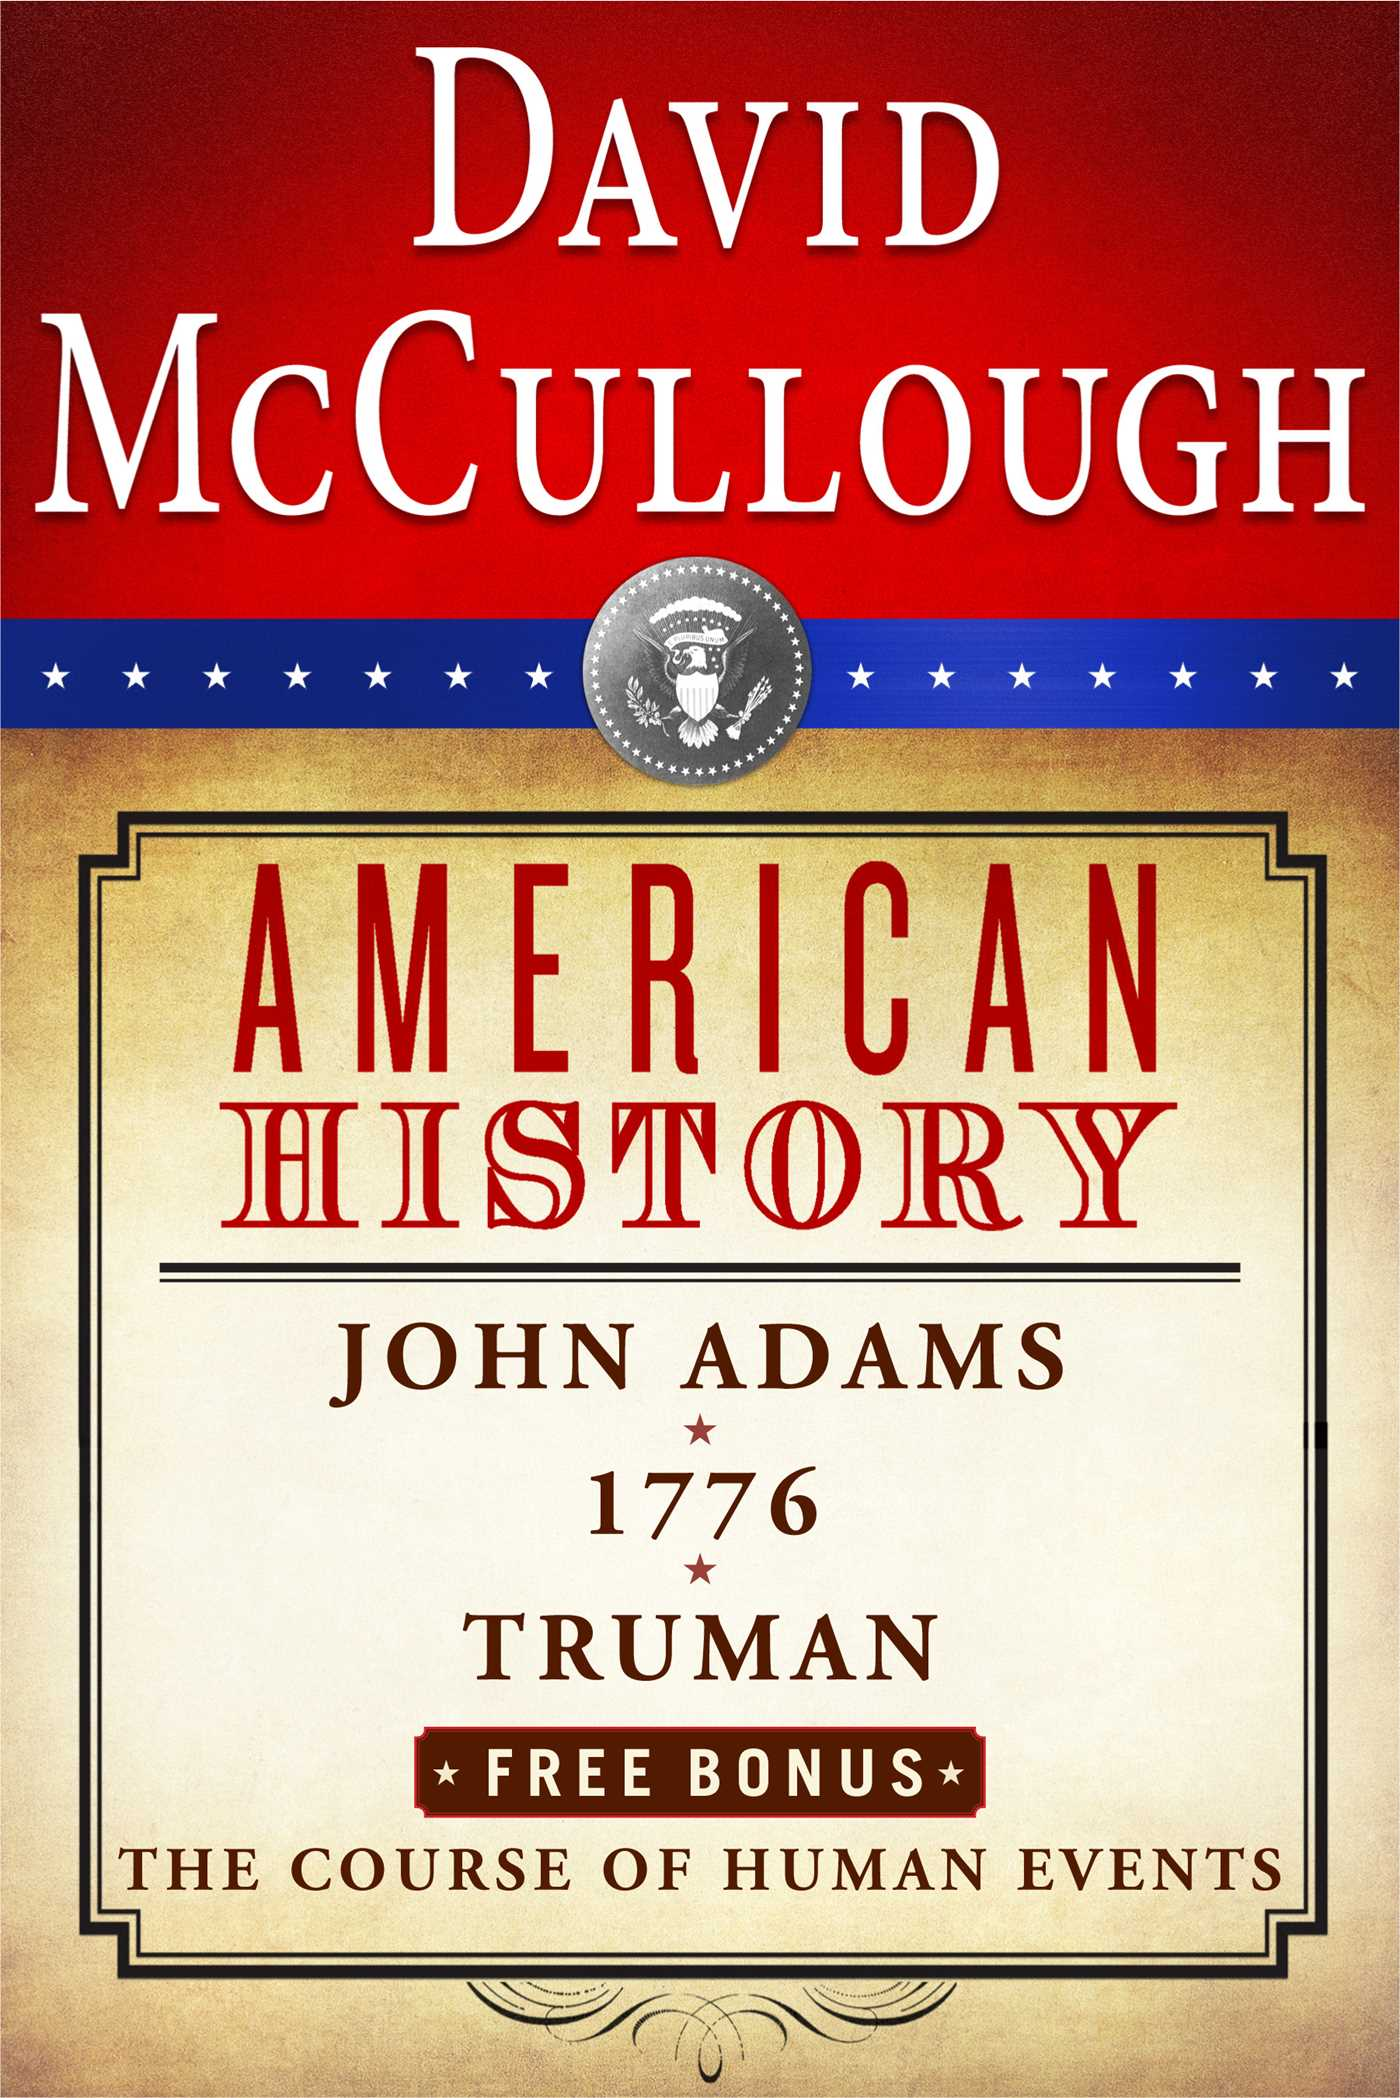 David McCullough American History E-book Box Set eBook by David